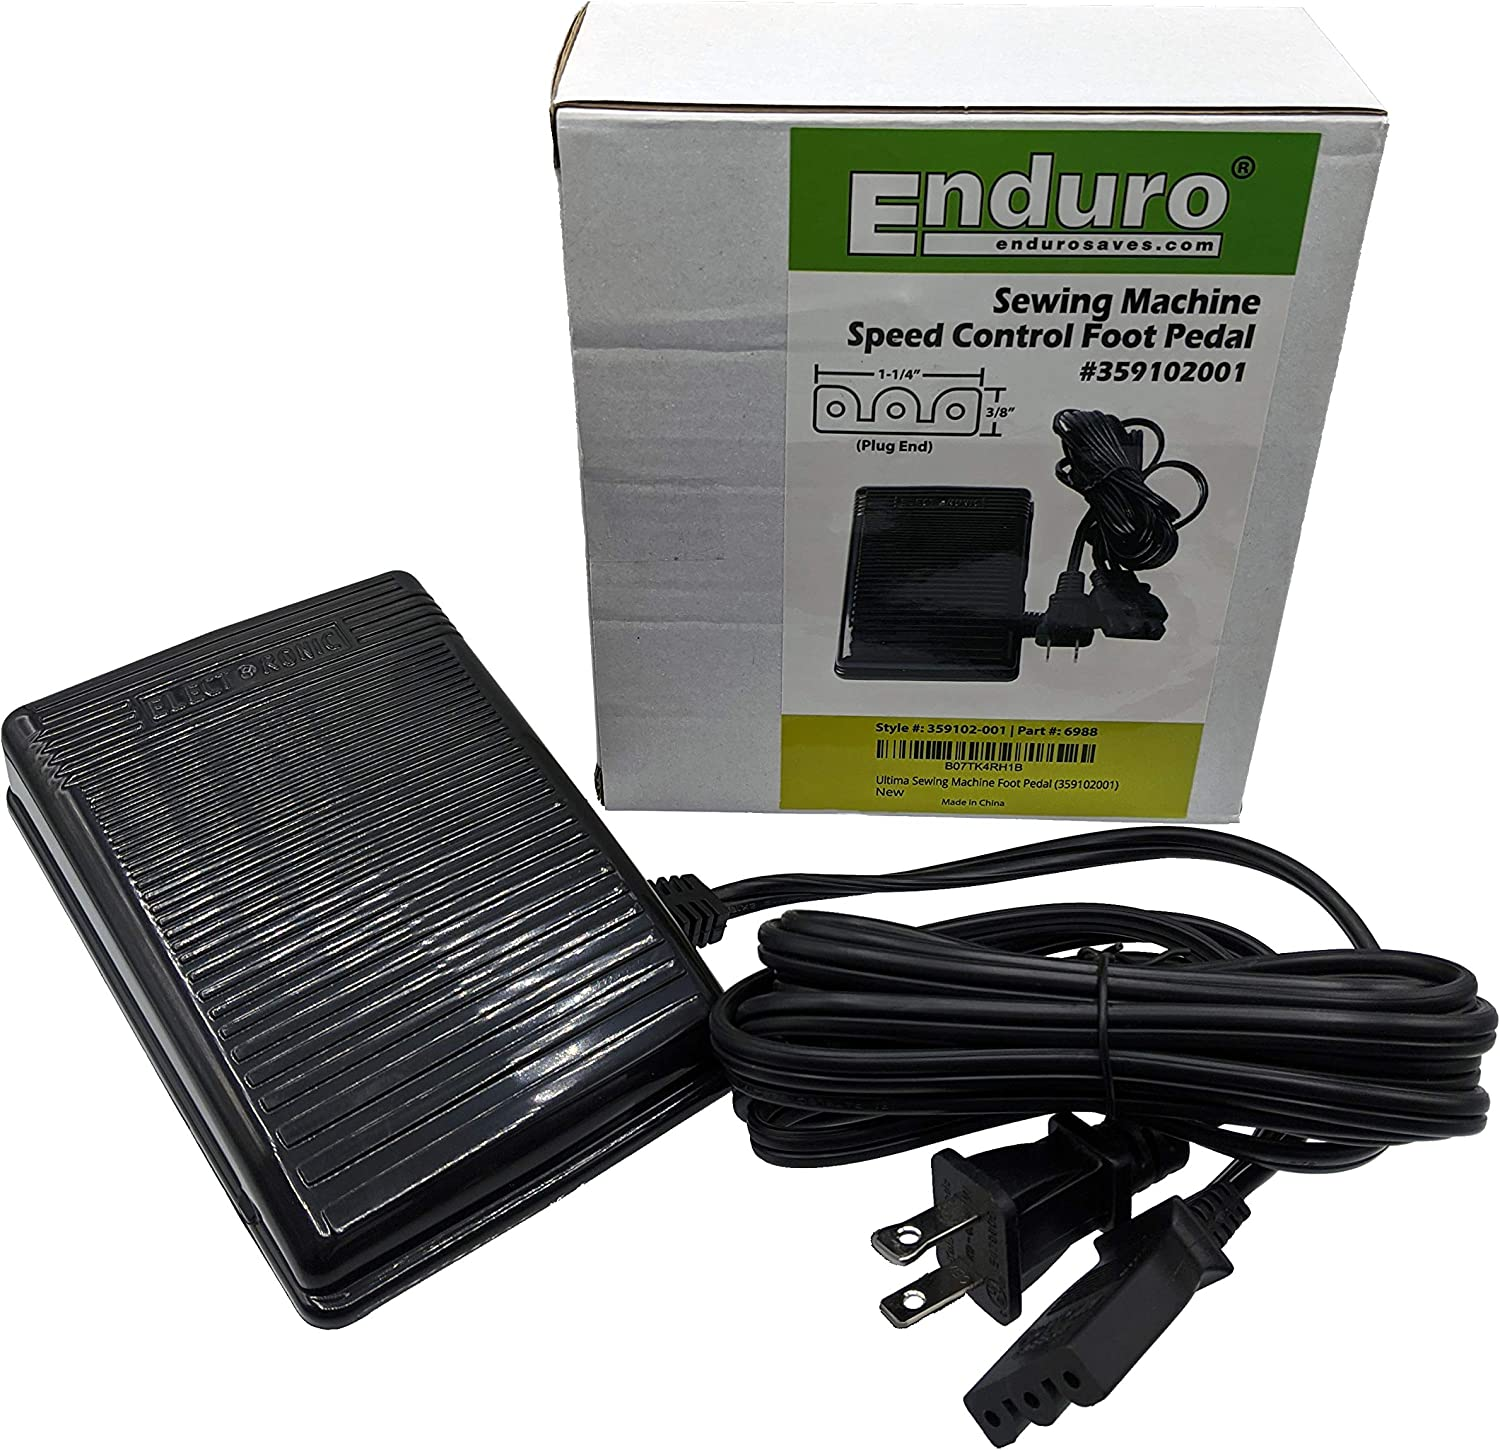 Enduro Sewing Machine Foot Pedal – Variable Speed Foot Operated Control Pedal for Domestic and Imported Sewing Machines (359102001)